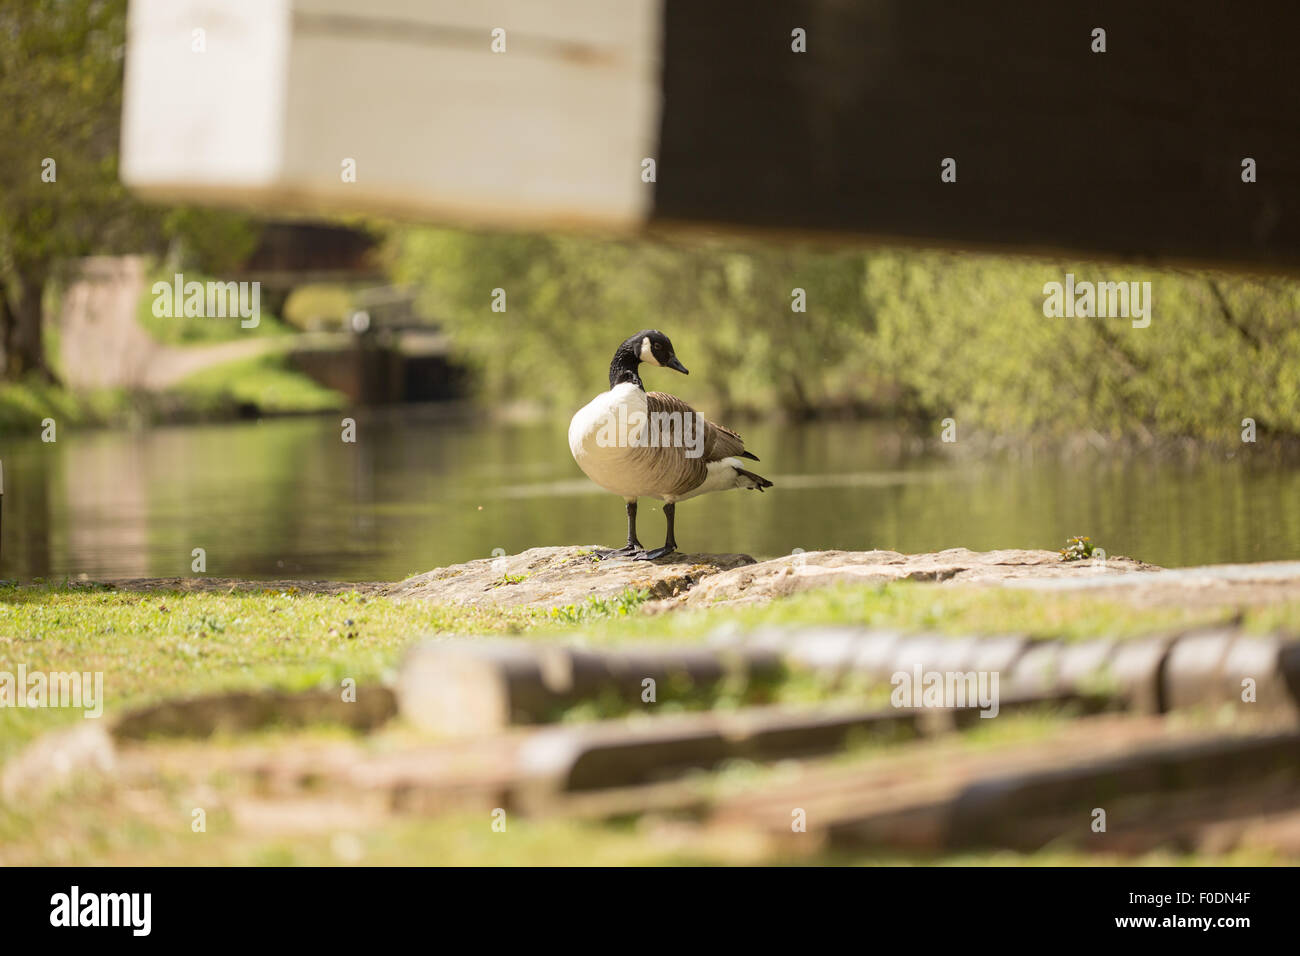 Canada Goose standing just watching, viewed from the other side of a lock gate beam. - Stock Image